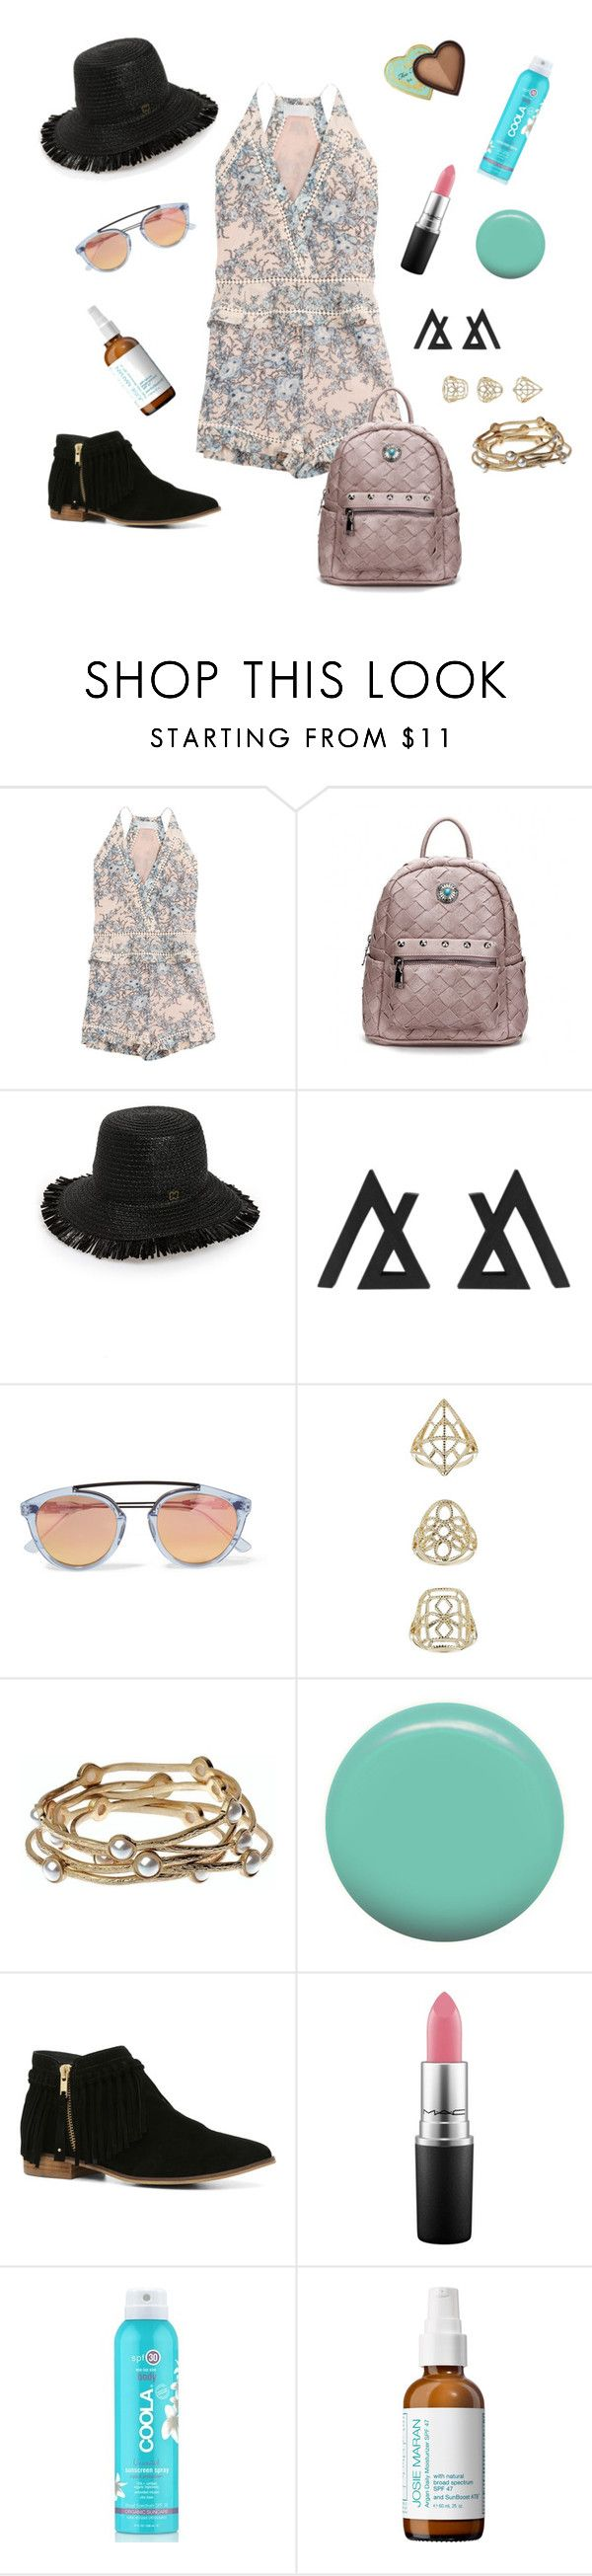 """How to Style Your Playsuit"" by fashion-mama-aquarius on Polyvore featuring Zimmermann, Eric Javits, Westward Leaning, Topshop, Majique, Jin Soon, ALDO, MAC Cosmetics, COOLA Suncare and Josie Maran"